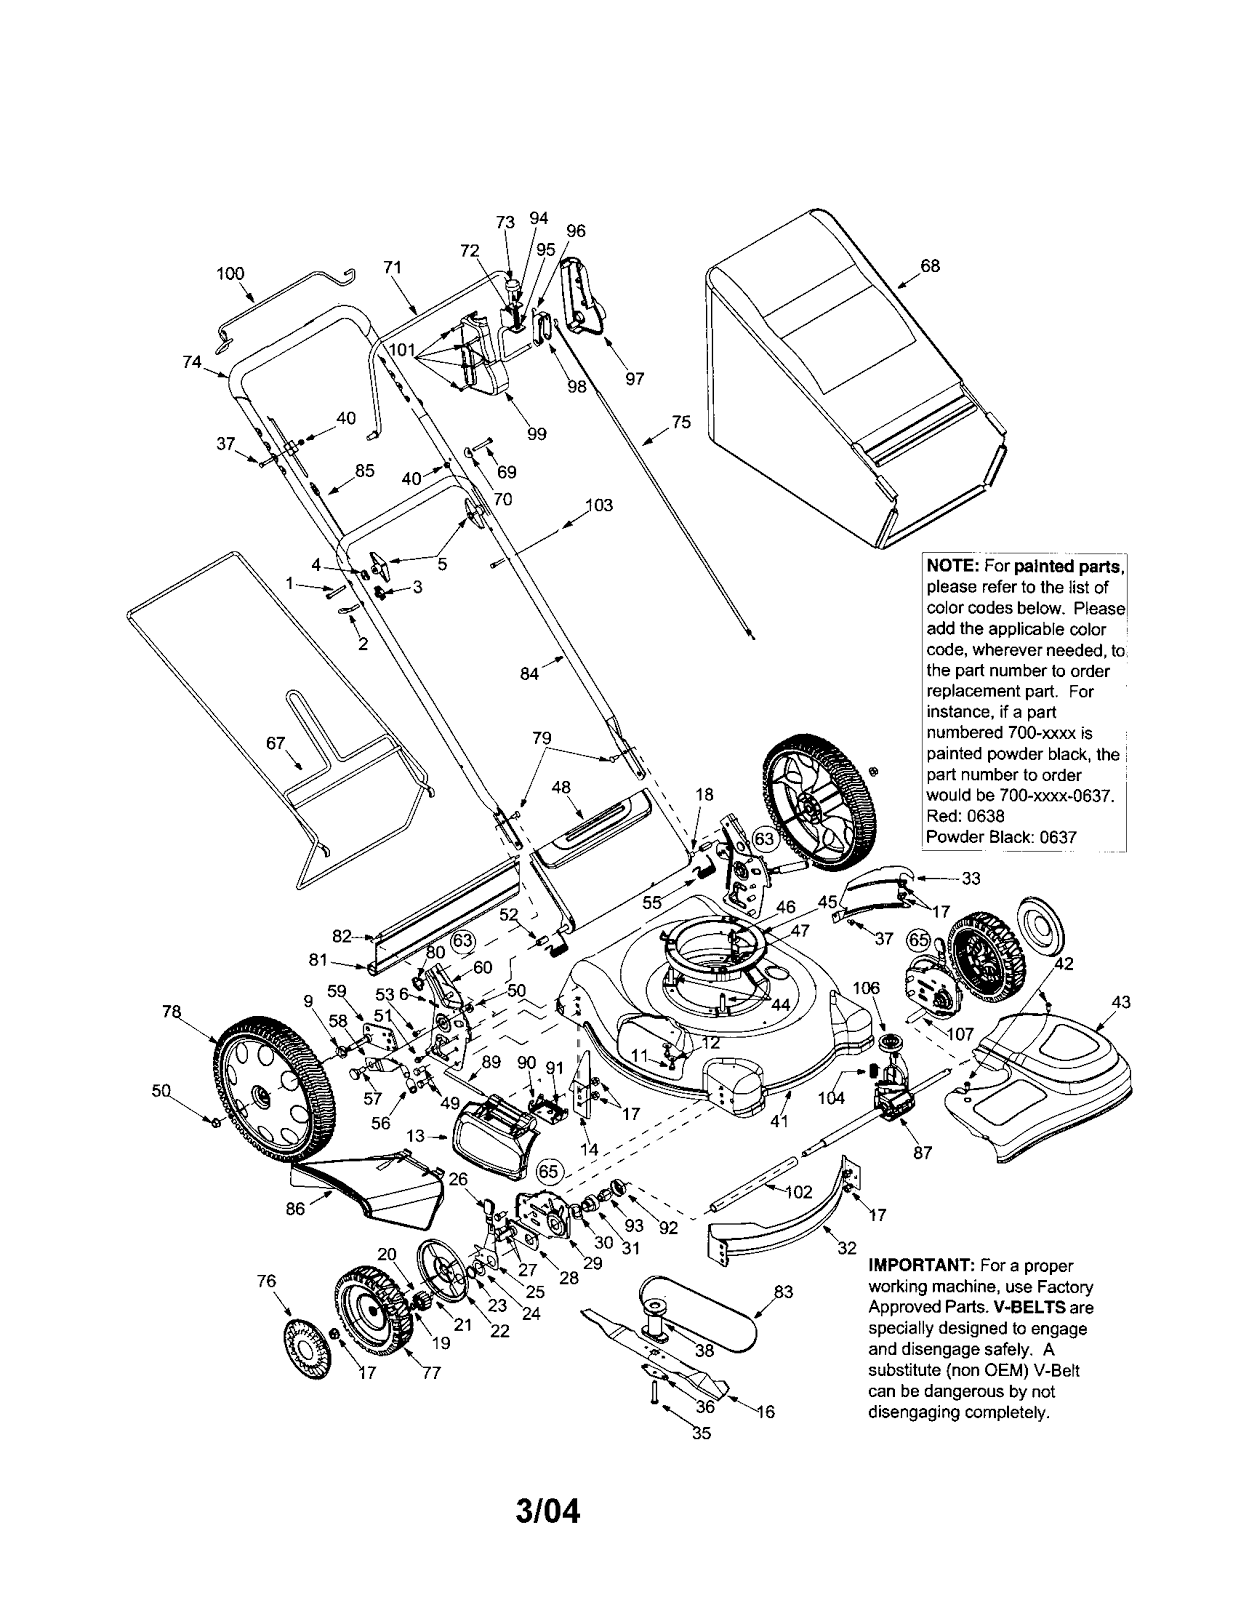 troy bilt mower schematics lawn    mower    parts diagram wire diagram here  lawn    mower    parts diagram wire diagram here